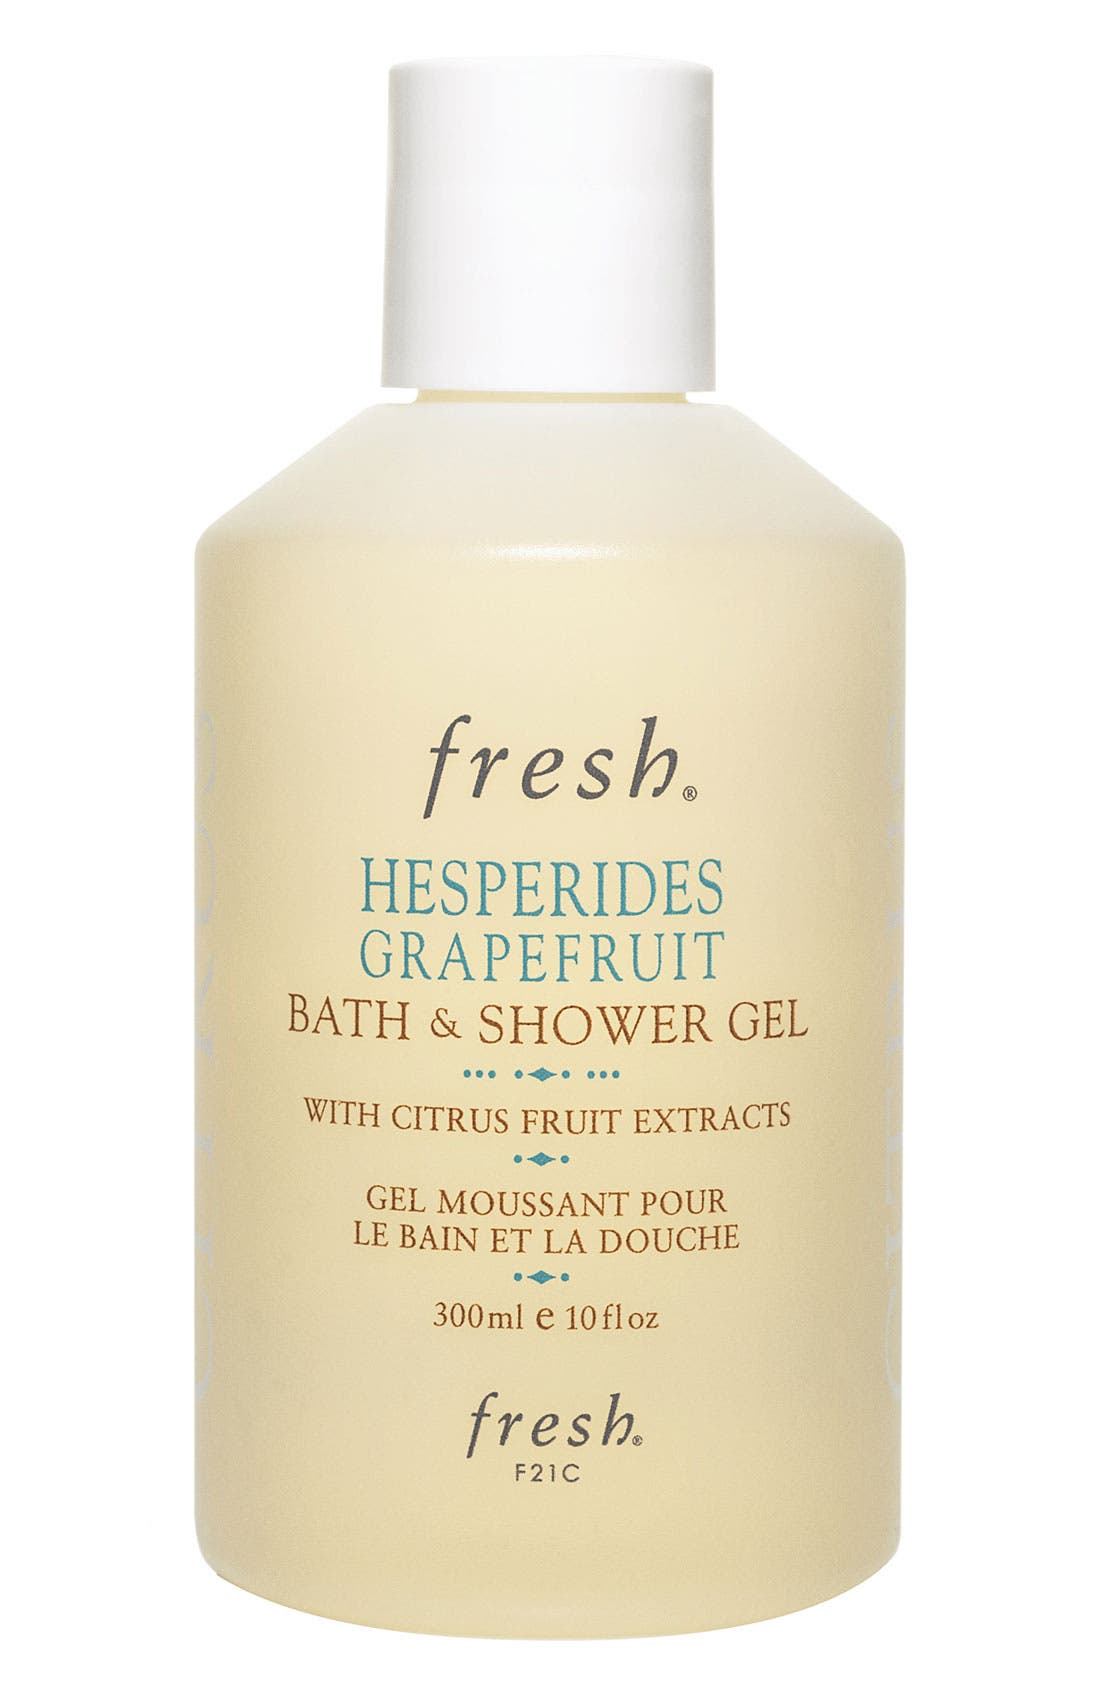 Fresh® 'Hesperides Grapefruit' Bath & Shower Gel